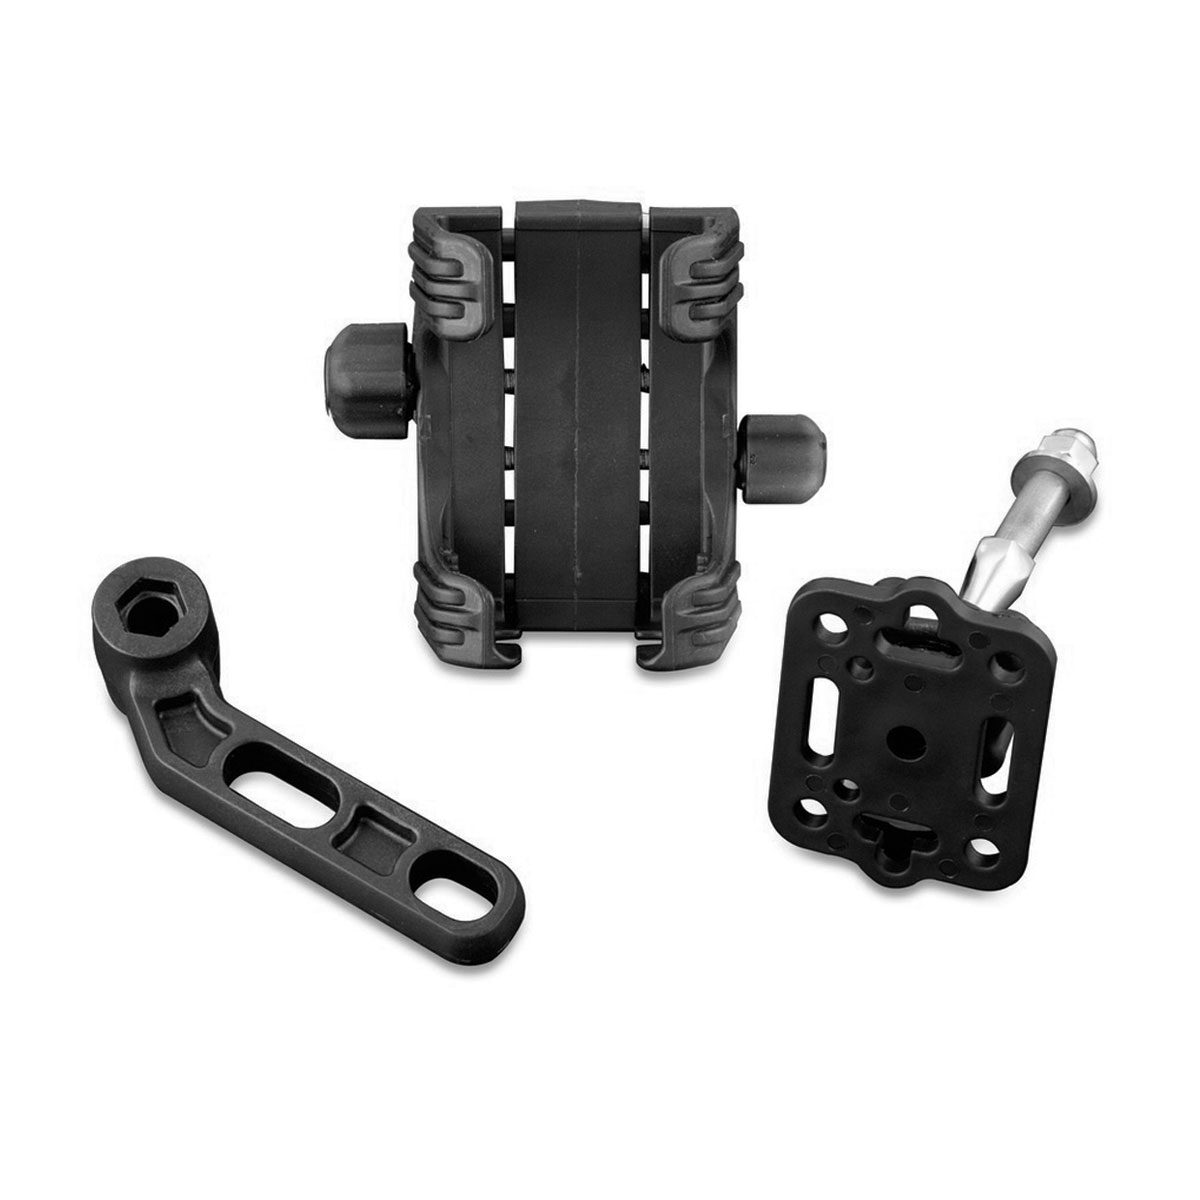 Kuryakyn Tech-Connect Complete Device Mounting Kit for Clutch or Brake Perch